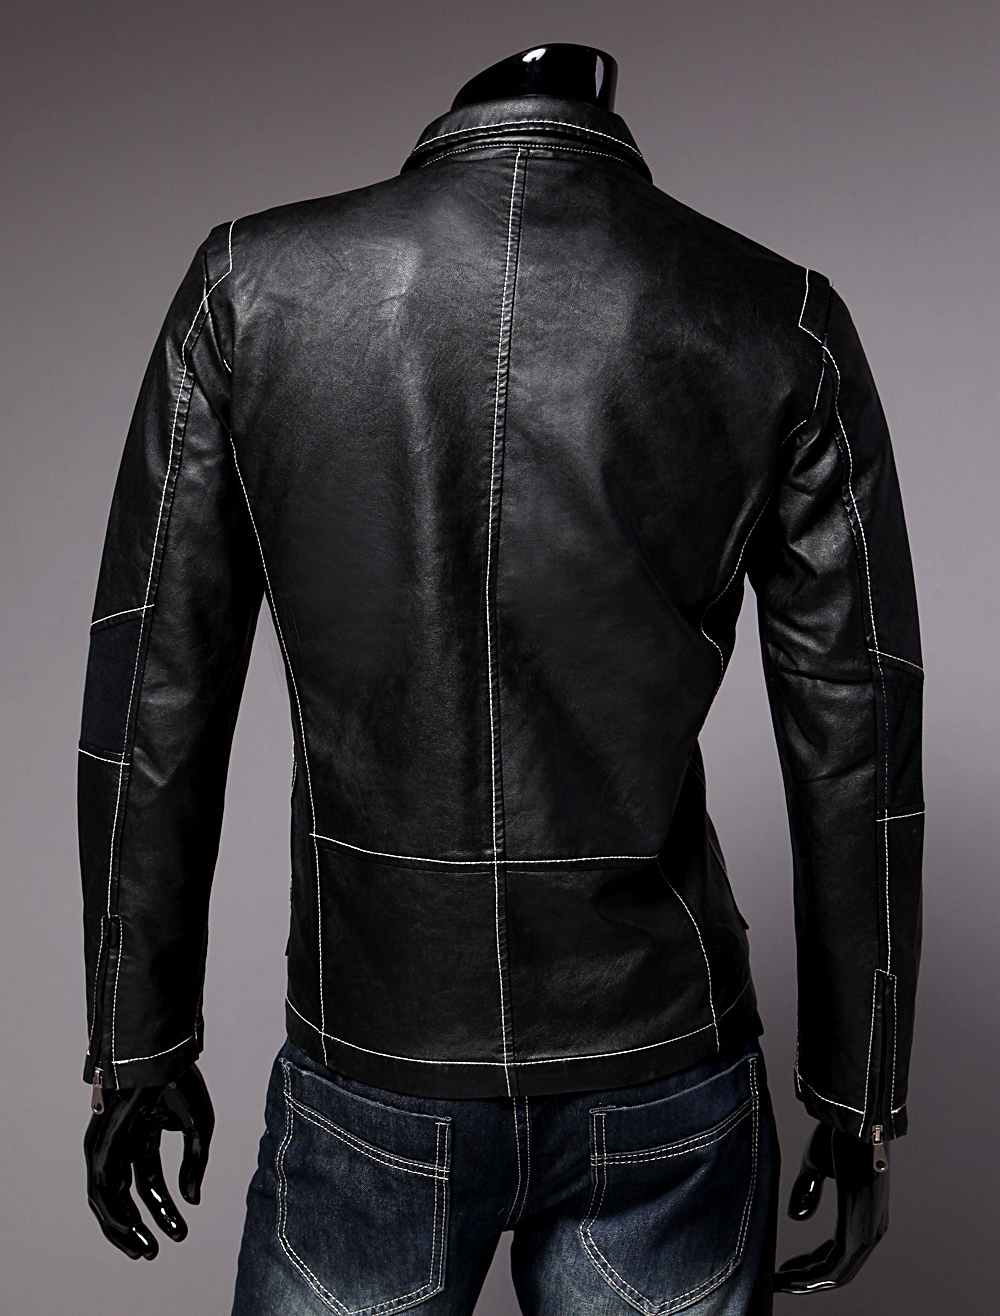 Find the Best Deals on Cool Men's Jackets At Affordable Prices. Shop Today for your Very Own Unique Jacket. Worldwide Shipping Available. Receive 10% Off On Your First Order. Shop our collection of cool jackets for the spring, summer and fall seasons.